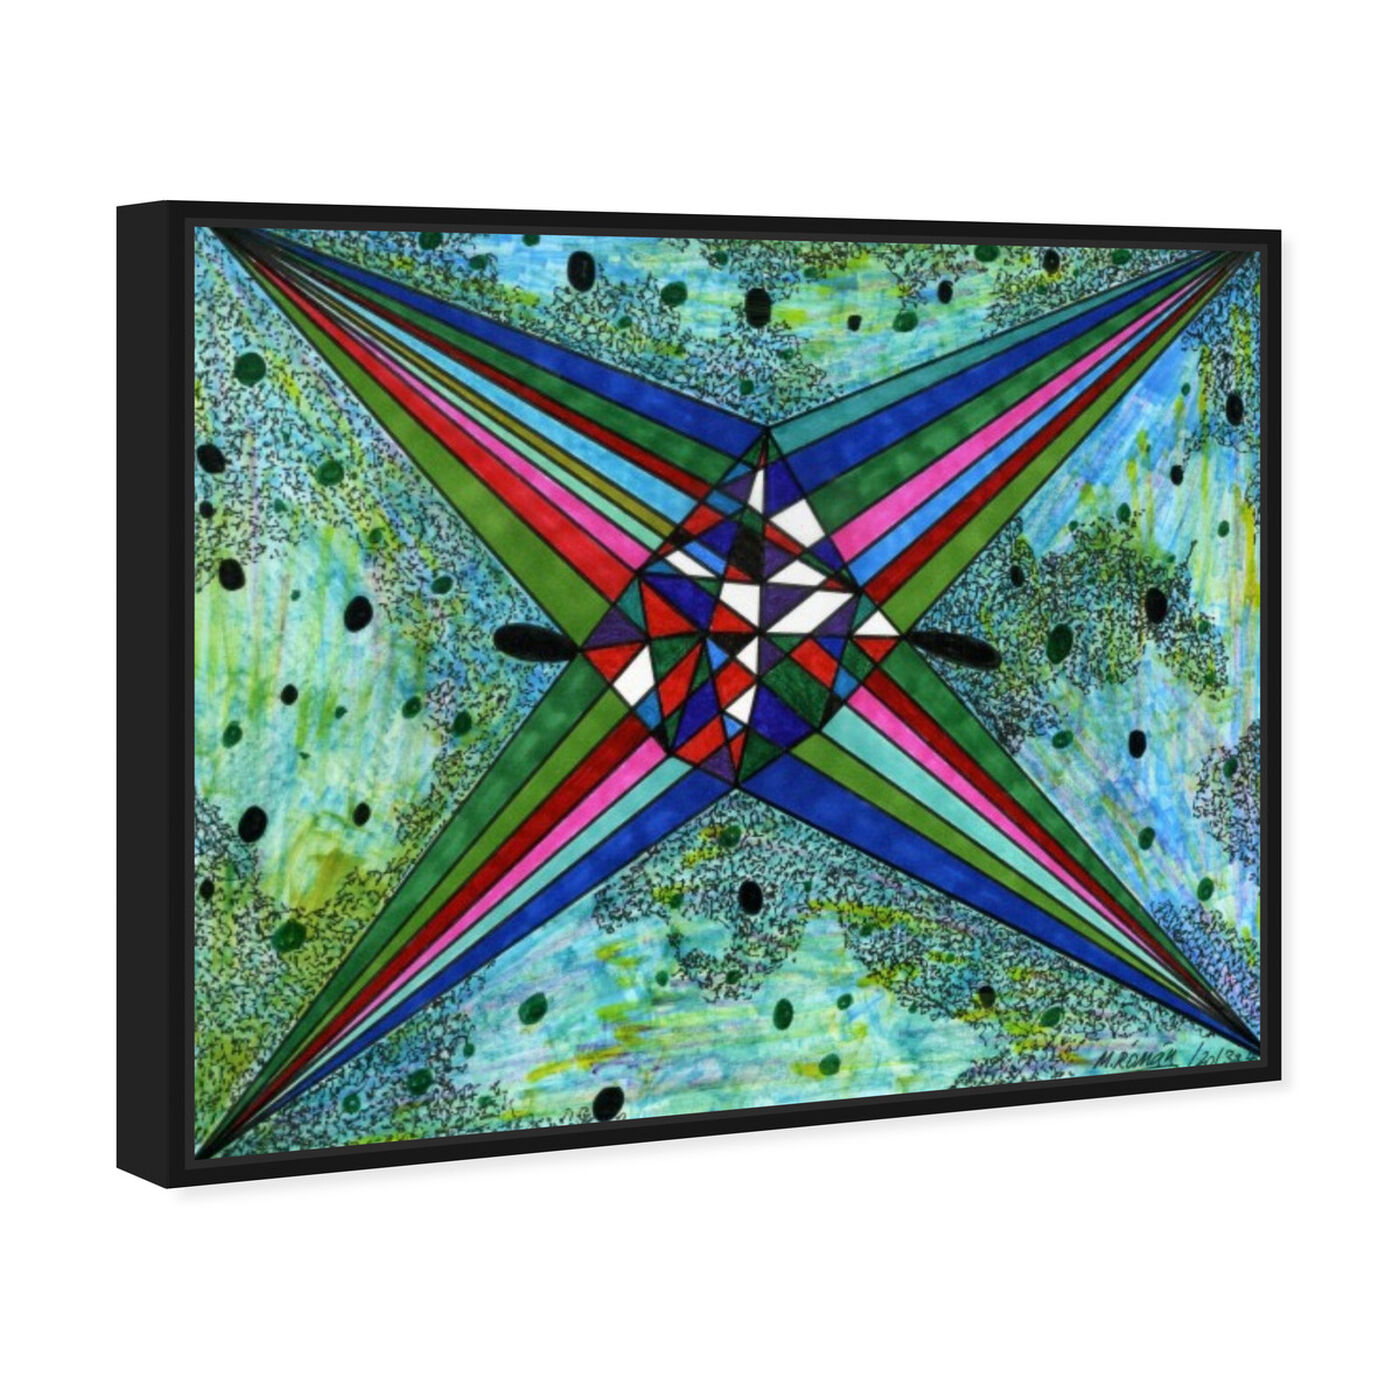 Angled view of Intergalactica featuring abstract and geometric art.